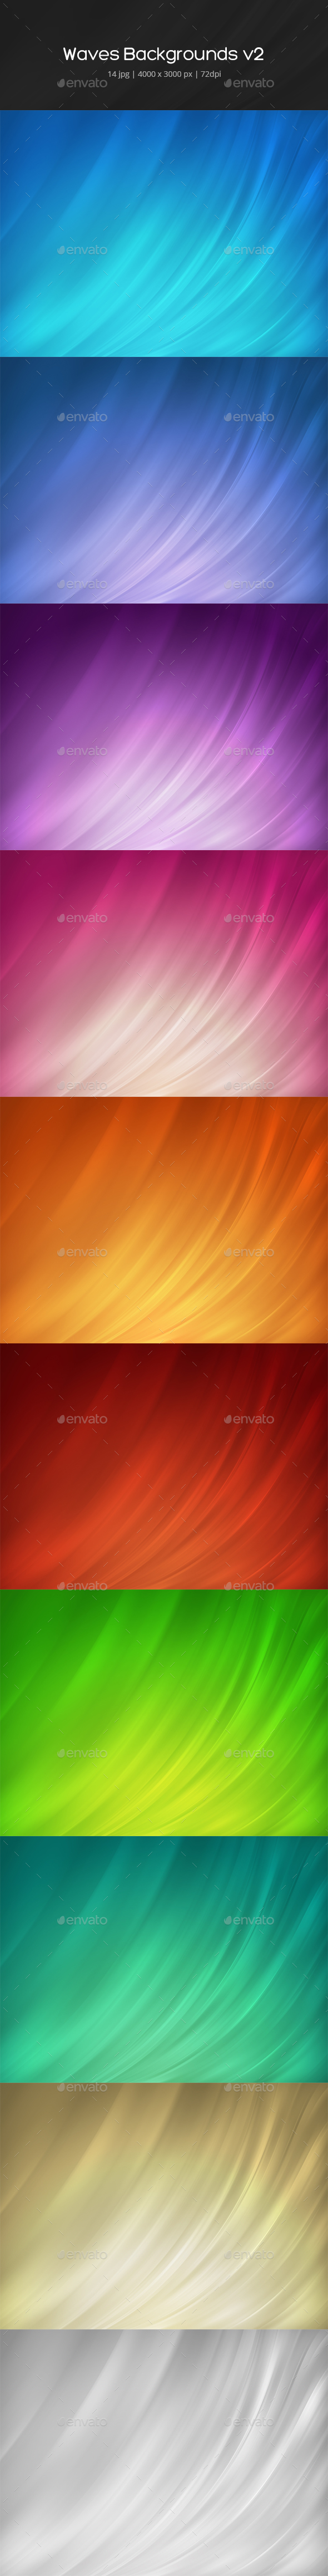 Abstract Waves Backgrounds v2 - Abstract Backgrounds